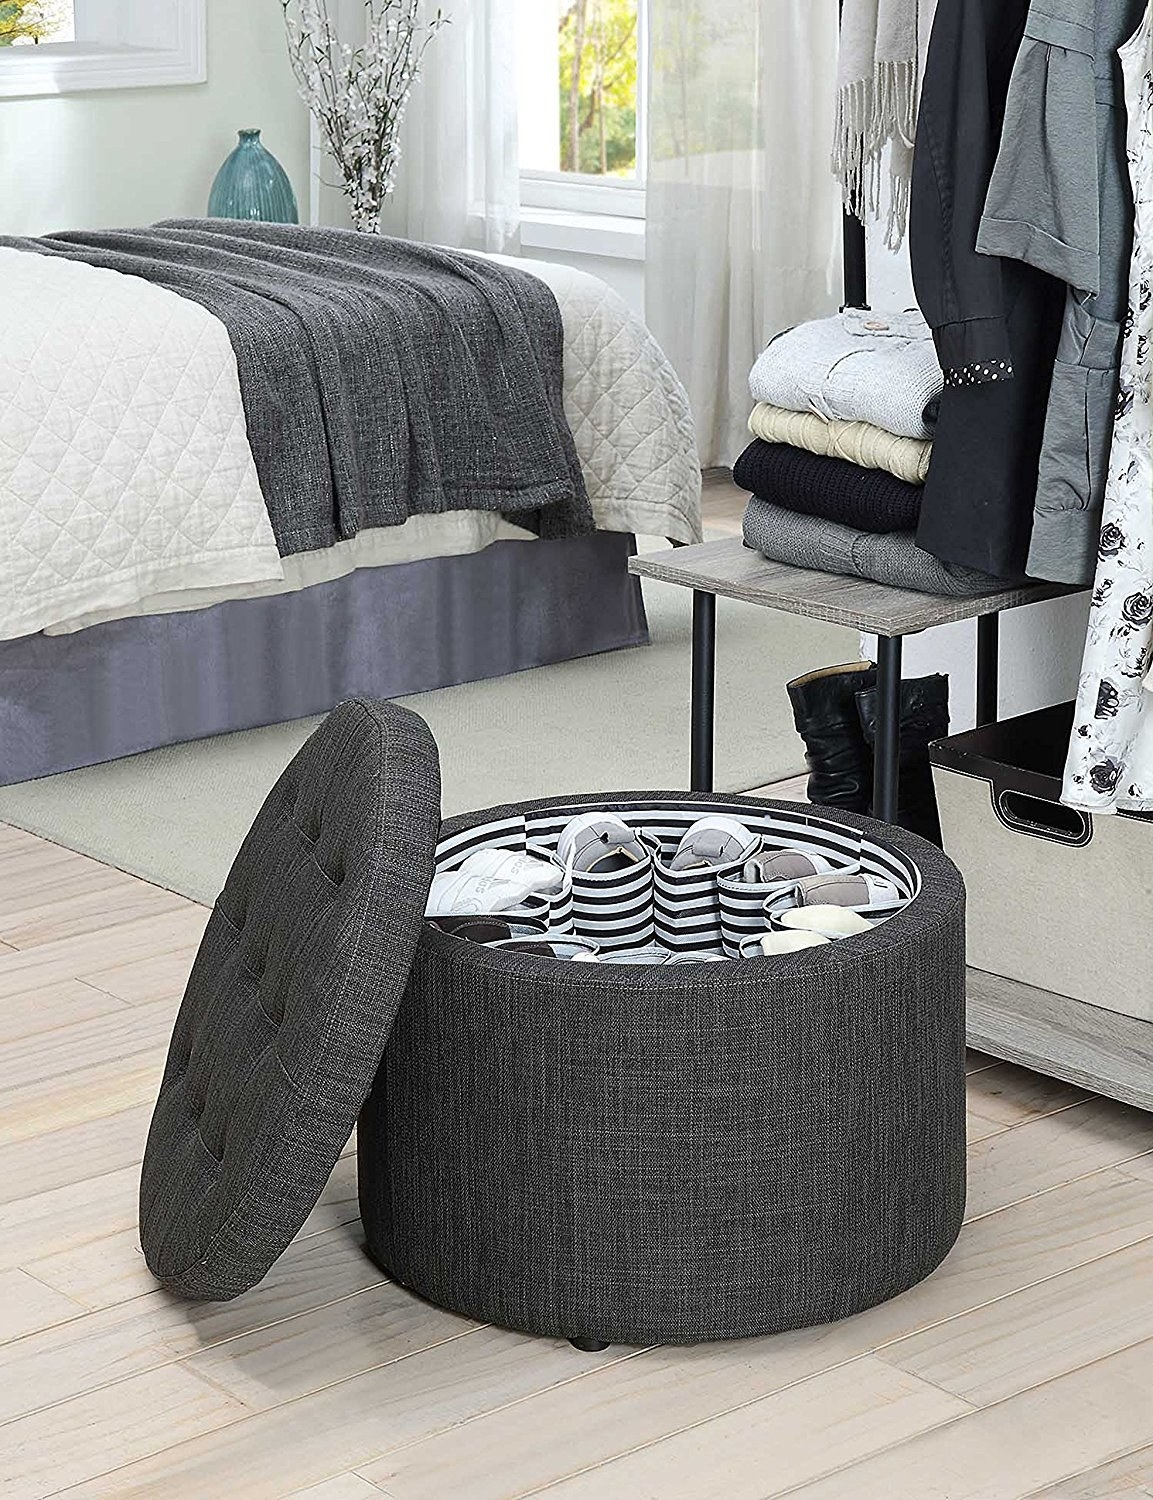 27 Ways To Make Even The Tiniest Apartment Feel Roomy